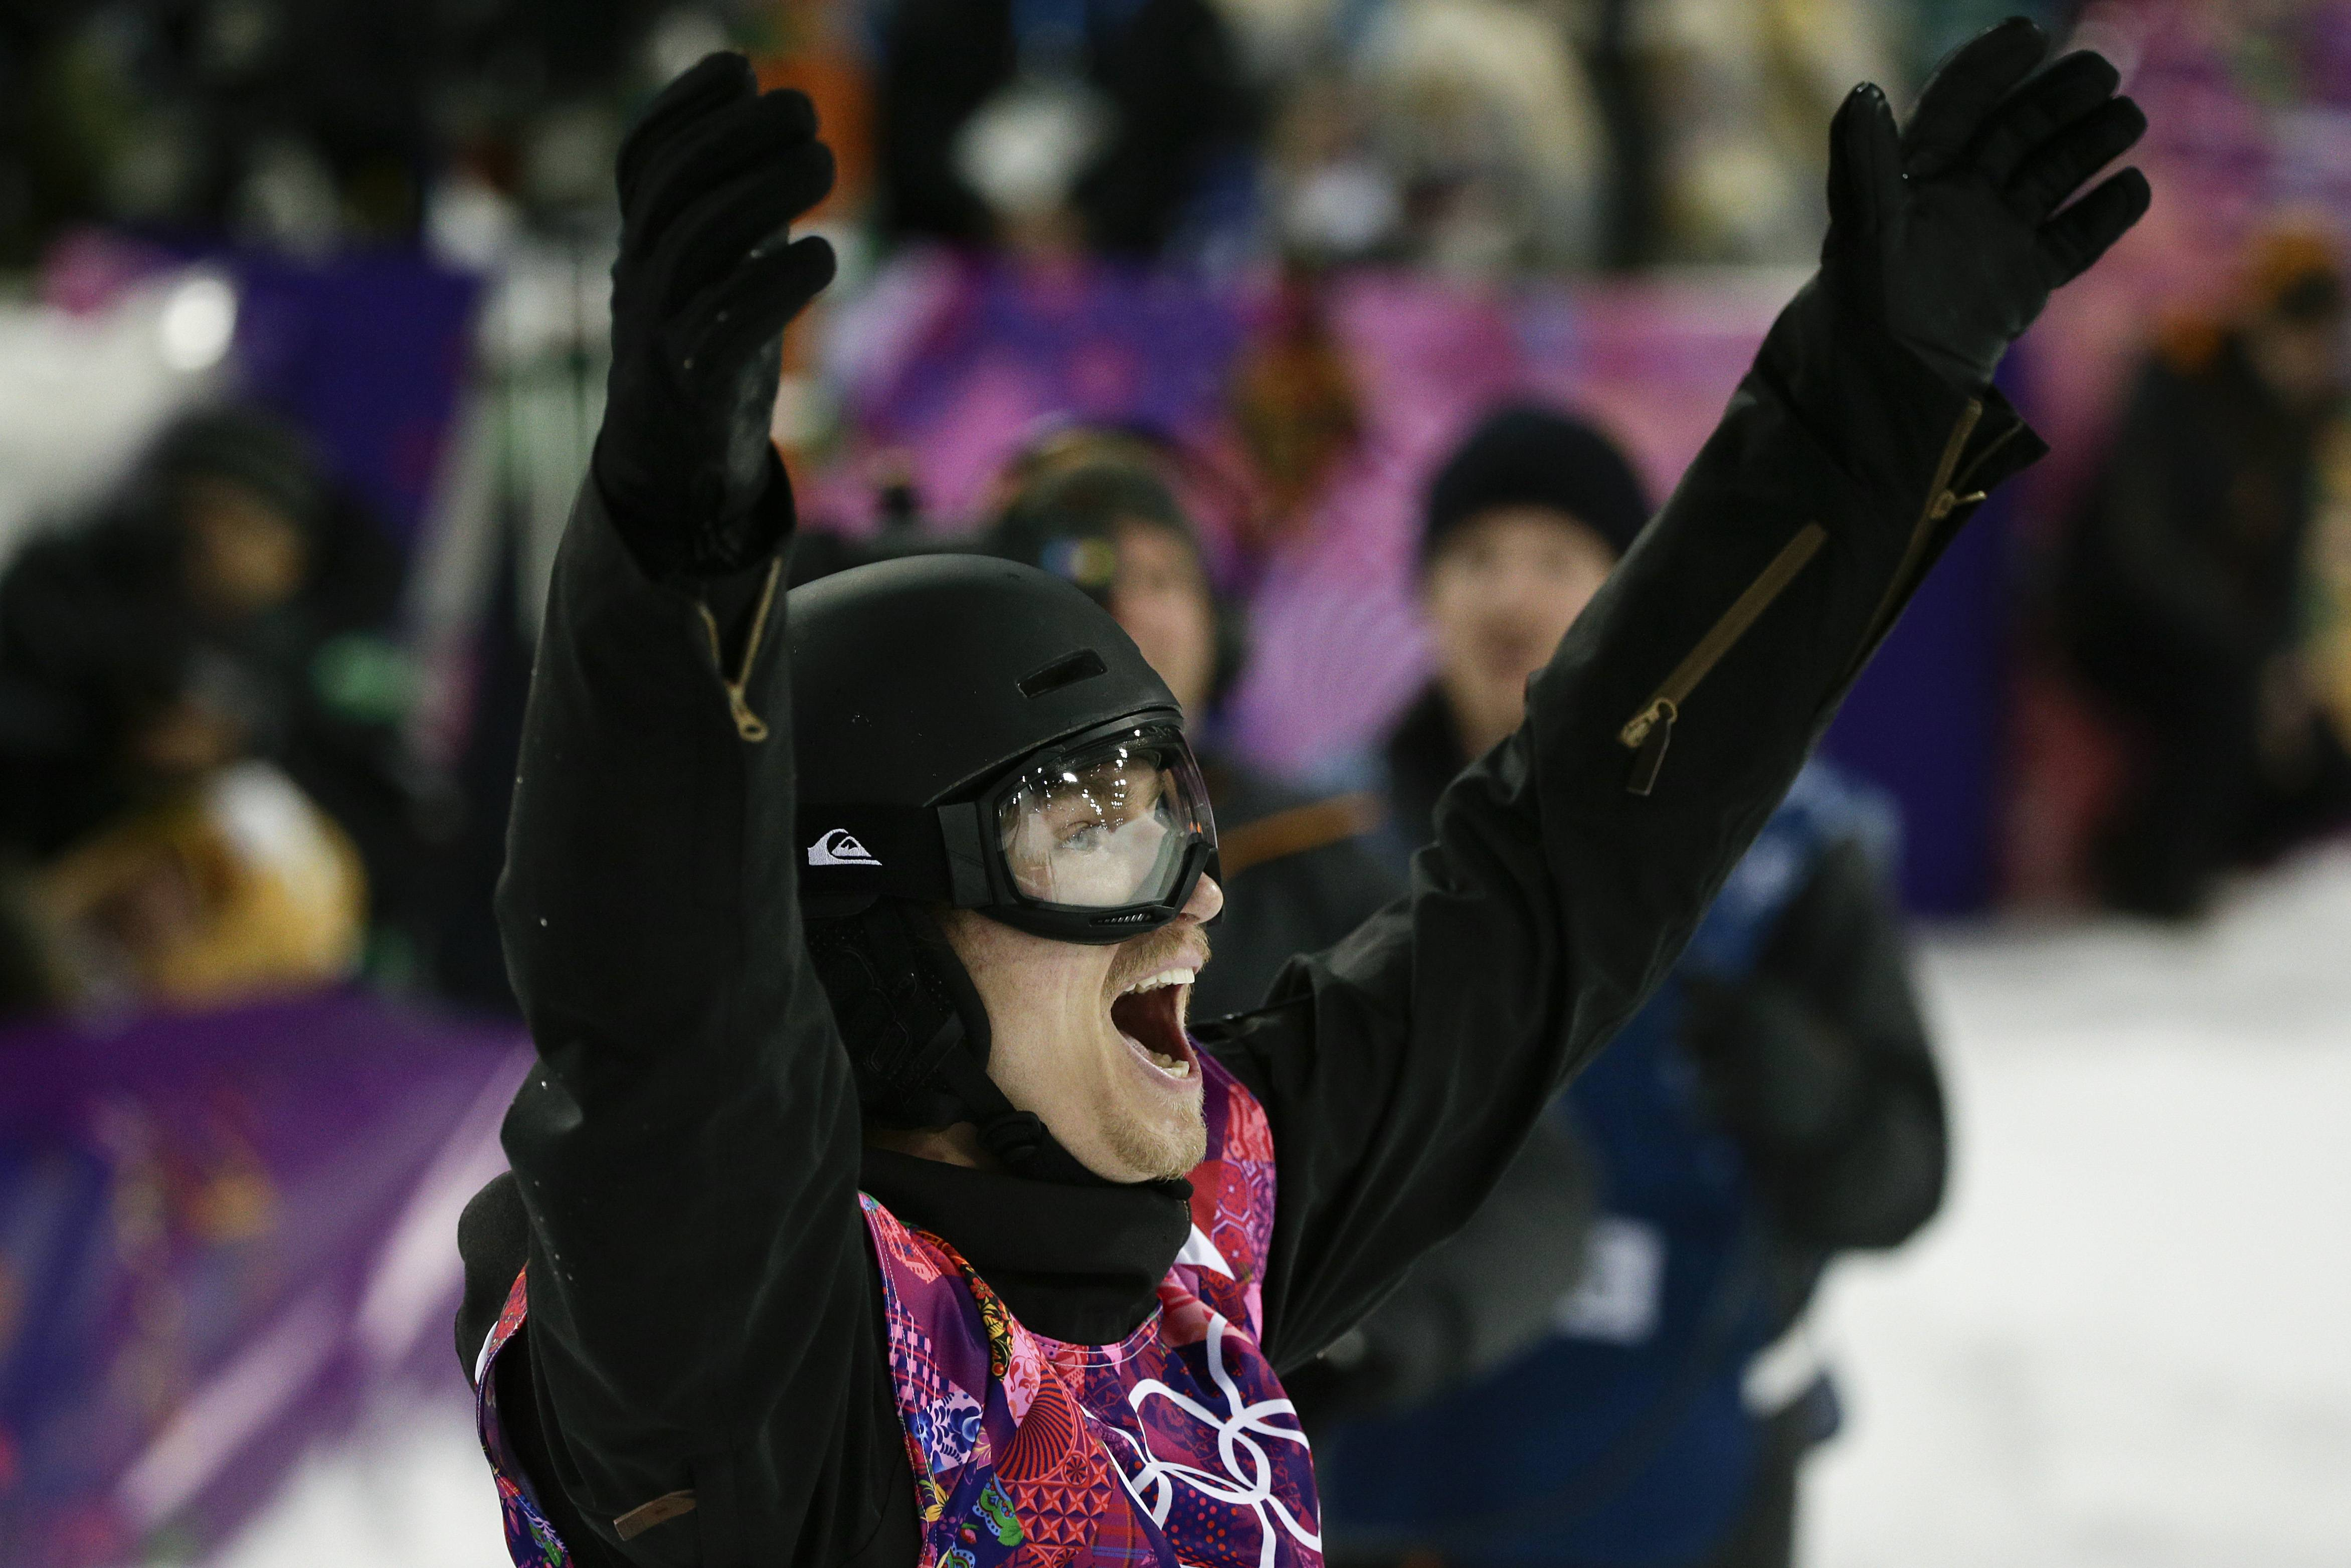 Switzerland's Iouri Podladtchikov celebrates after placing first in the men's snowboard halfpipe final.